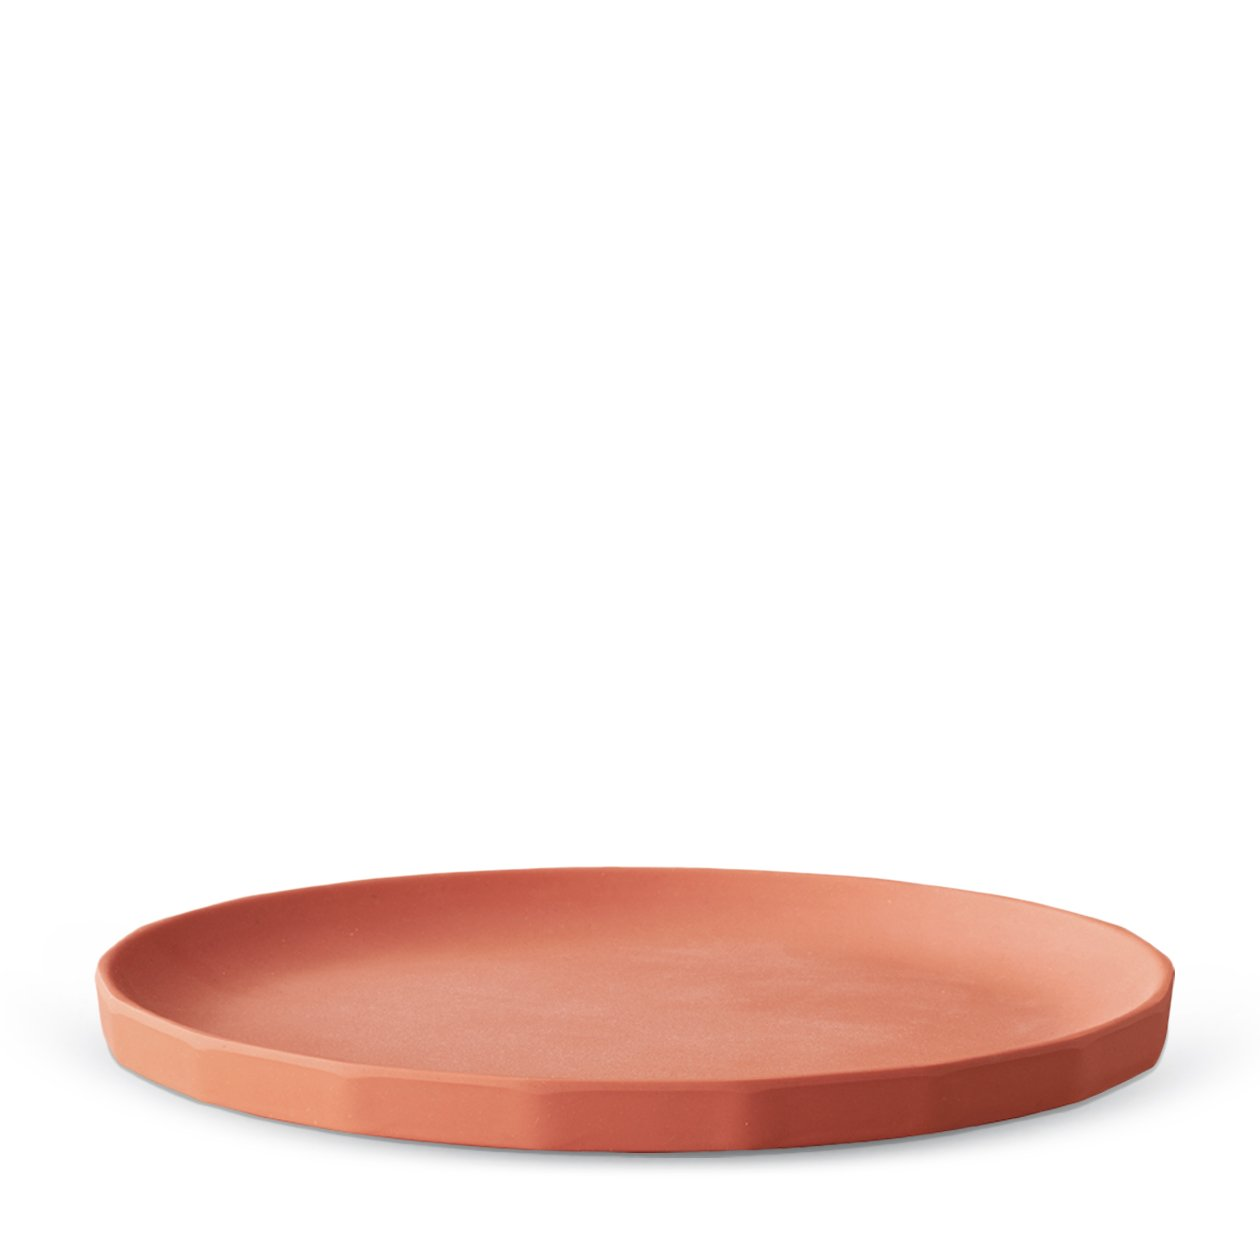 ALFRESCO DINNER PLATE - other colors available